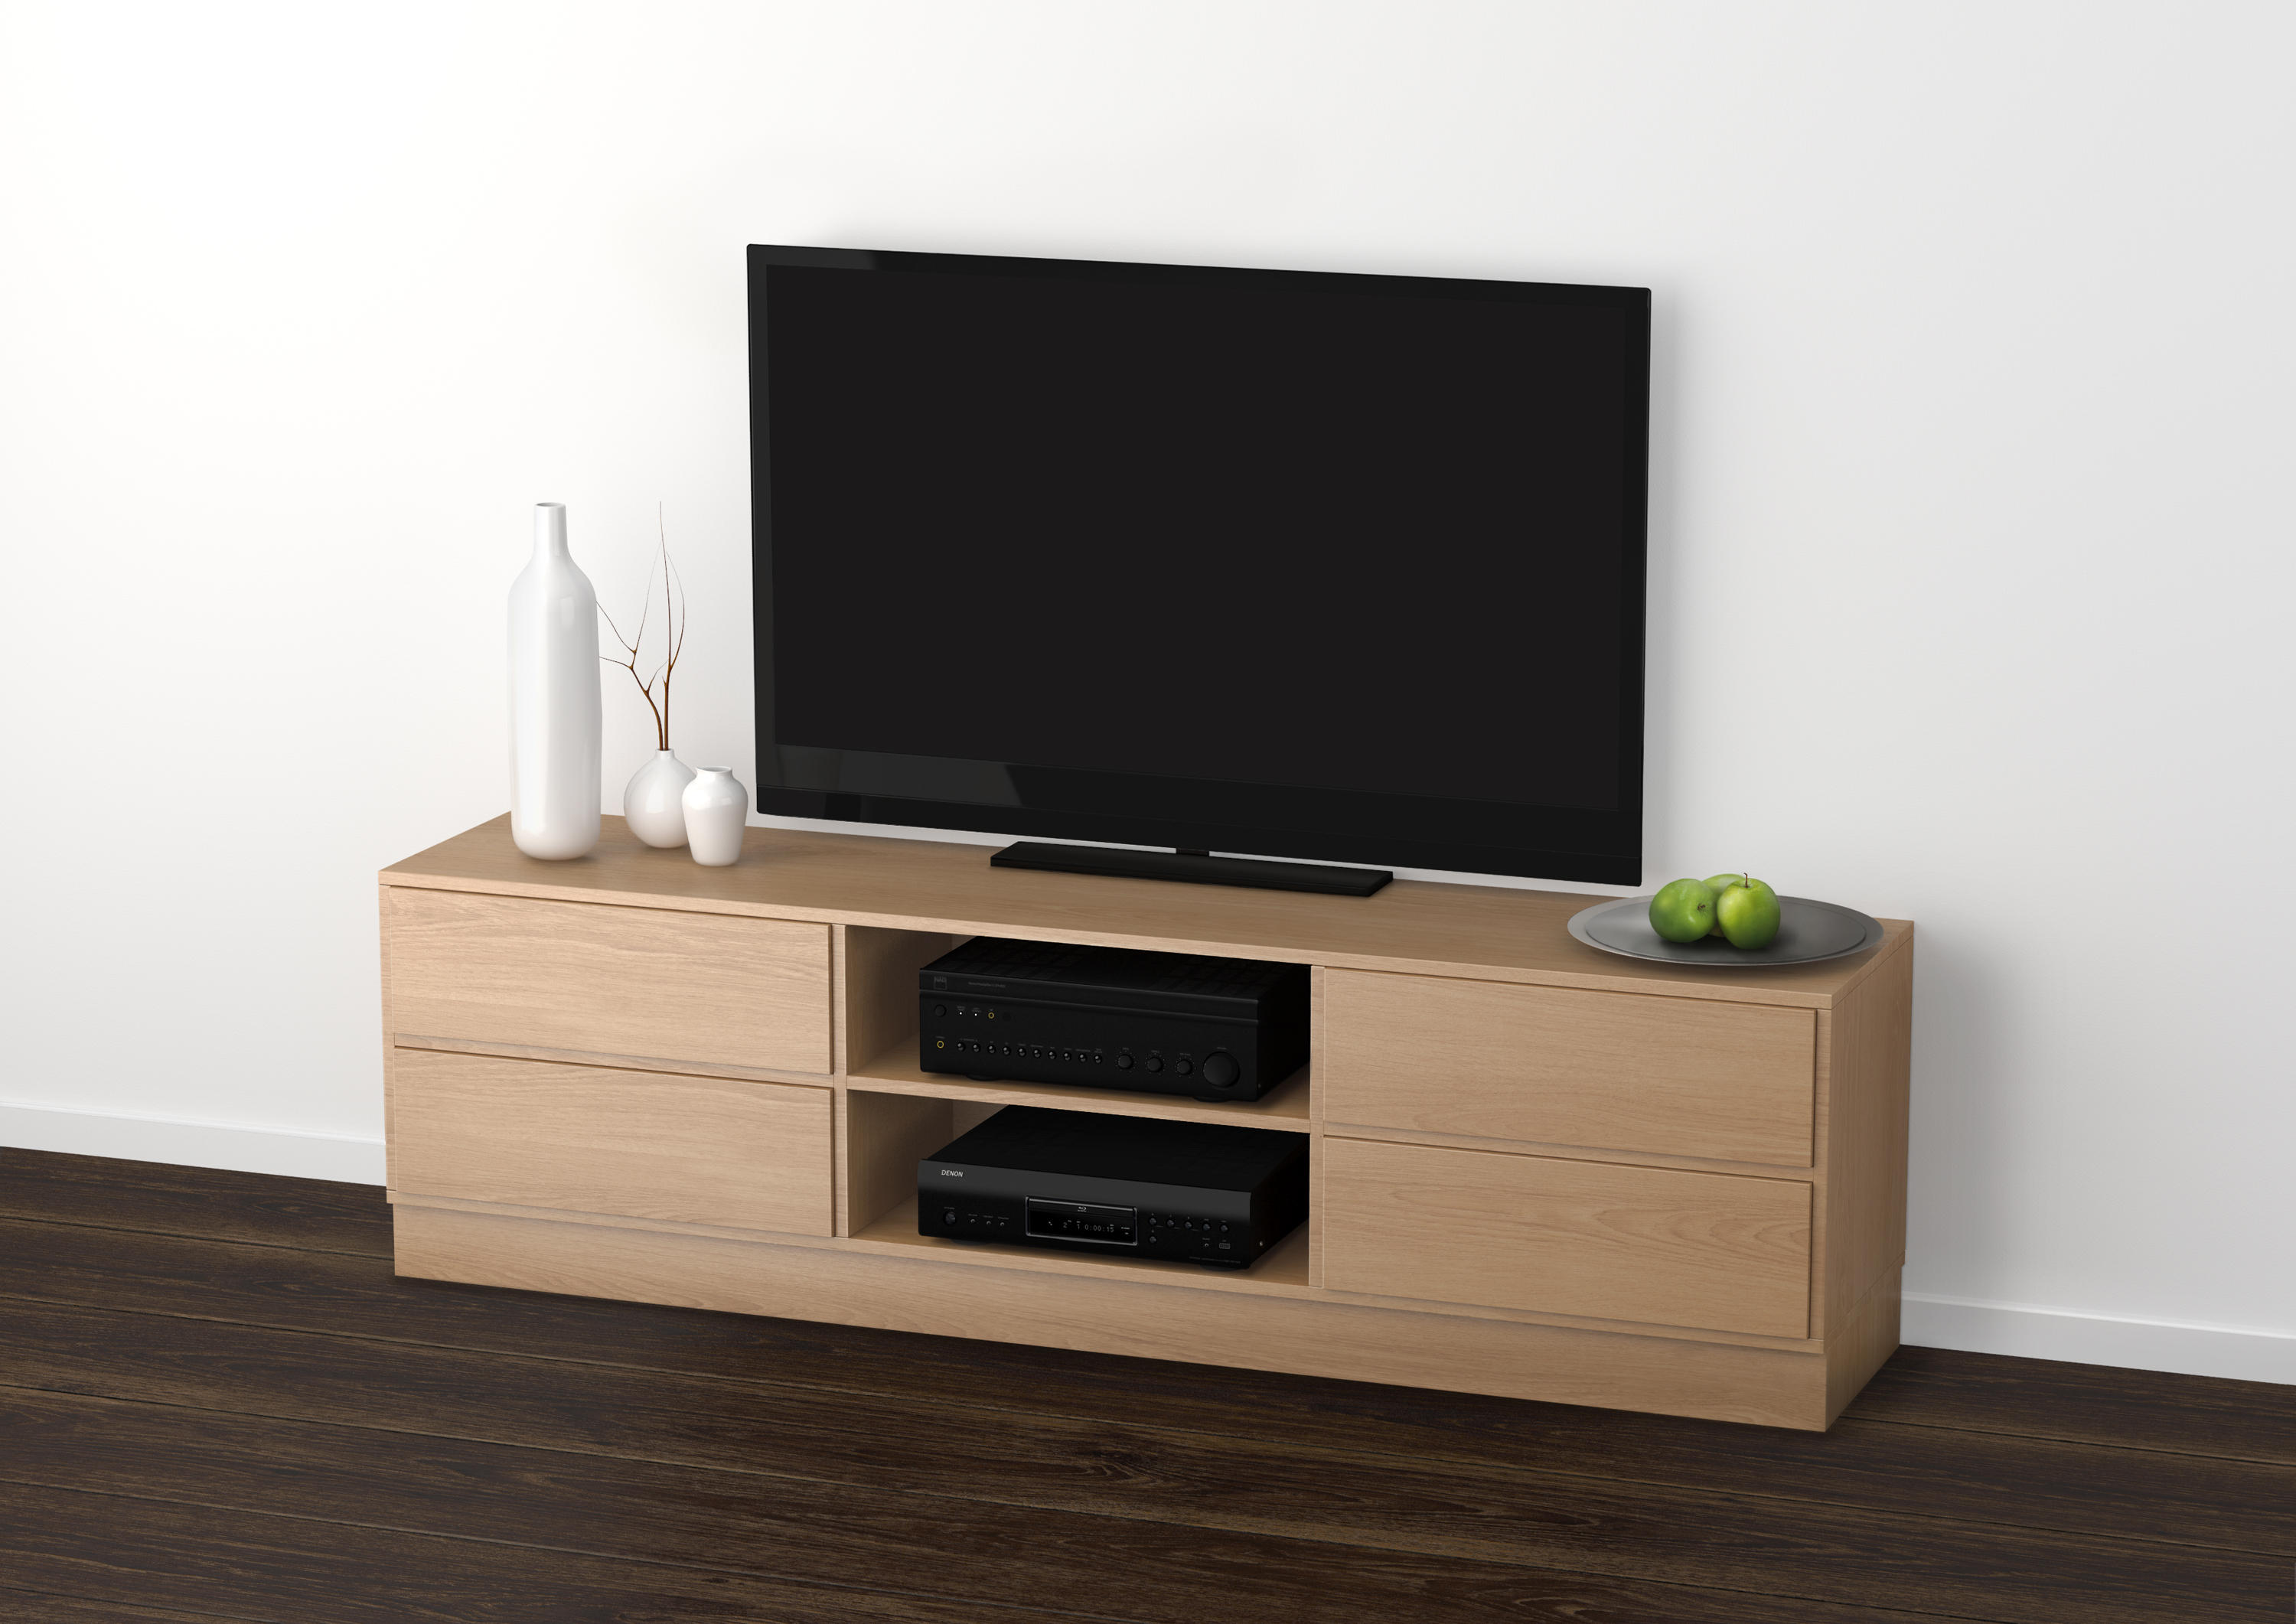 KLIM TV Cabinet M440 By